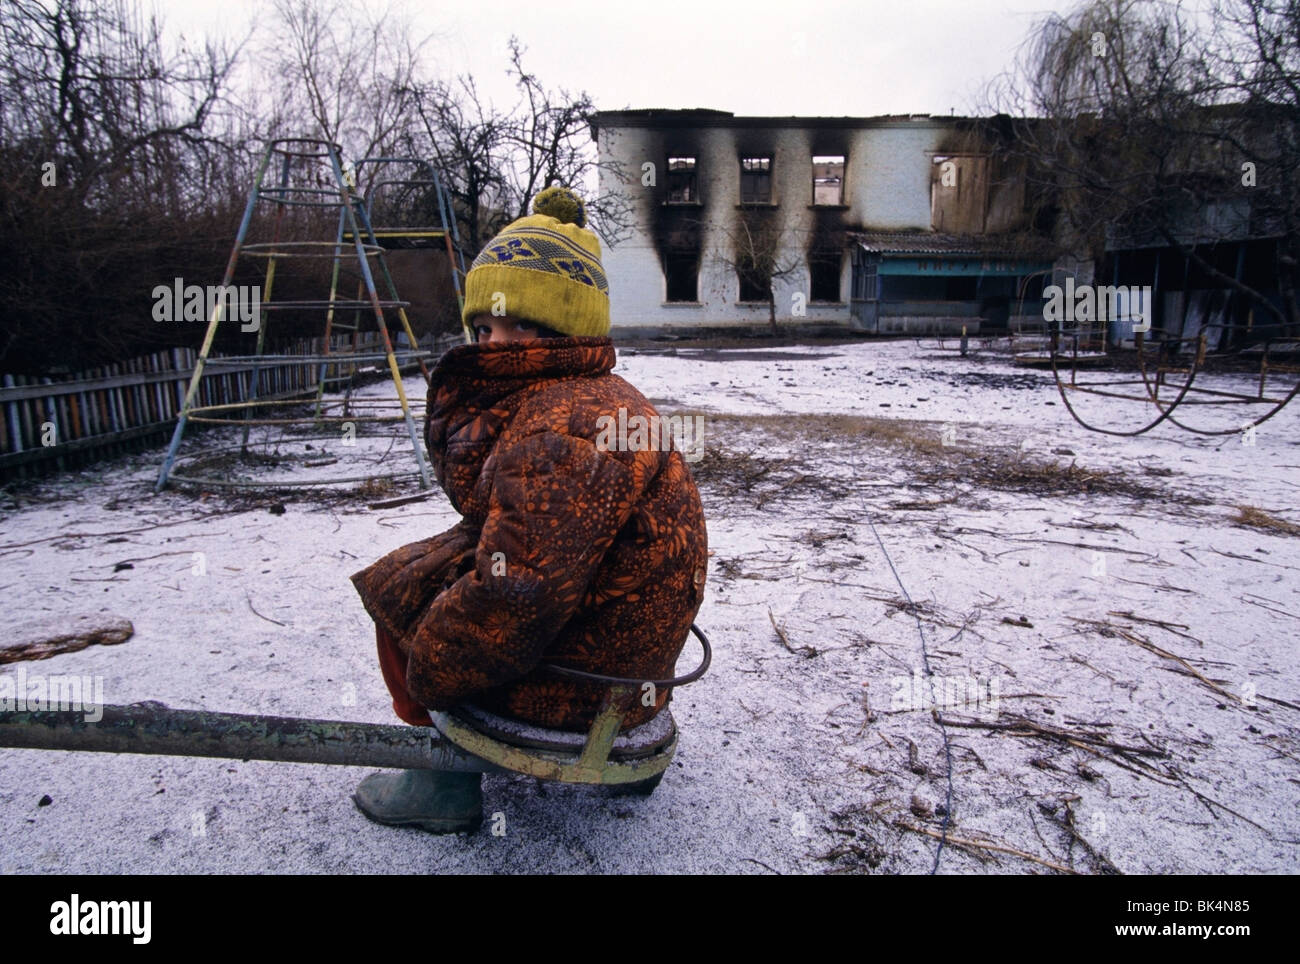 First Chechen War, 8 year old, Olla, sitting in the playground of her bombed out school South of Grozny in Chechnya. - Stock Image